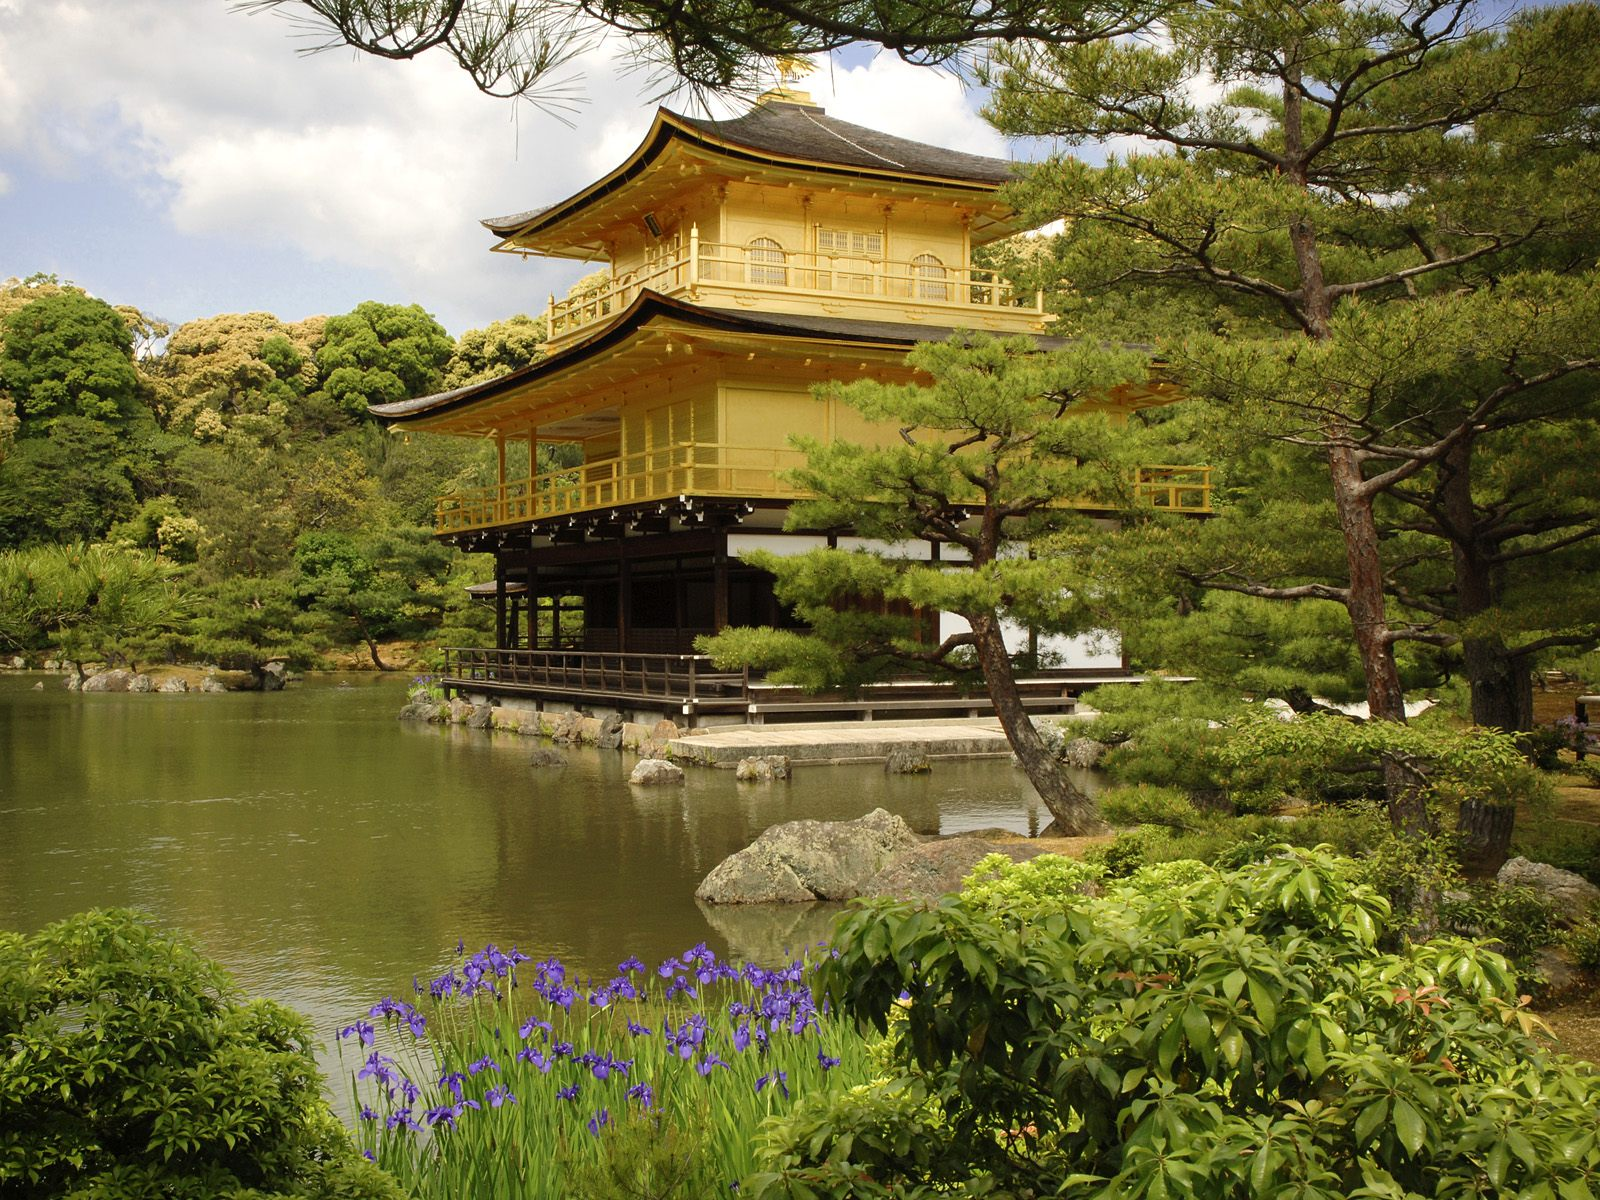 japan architecture wallpaper - photo #31